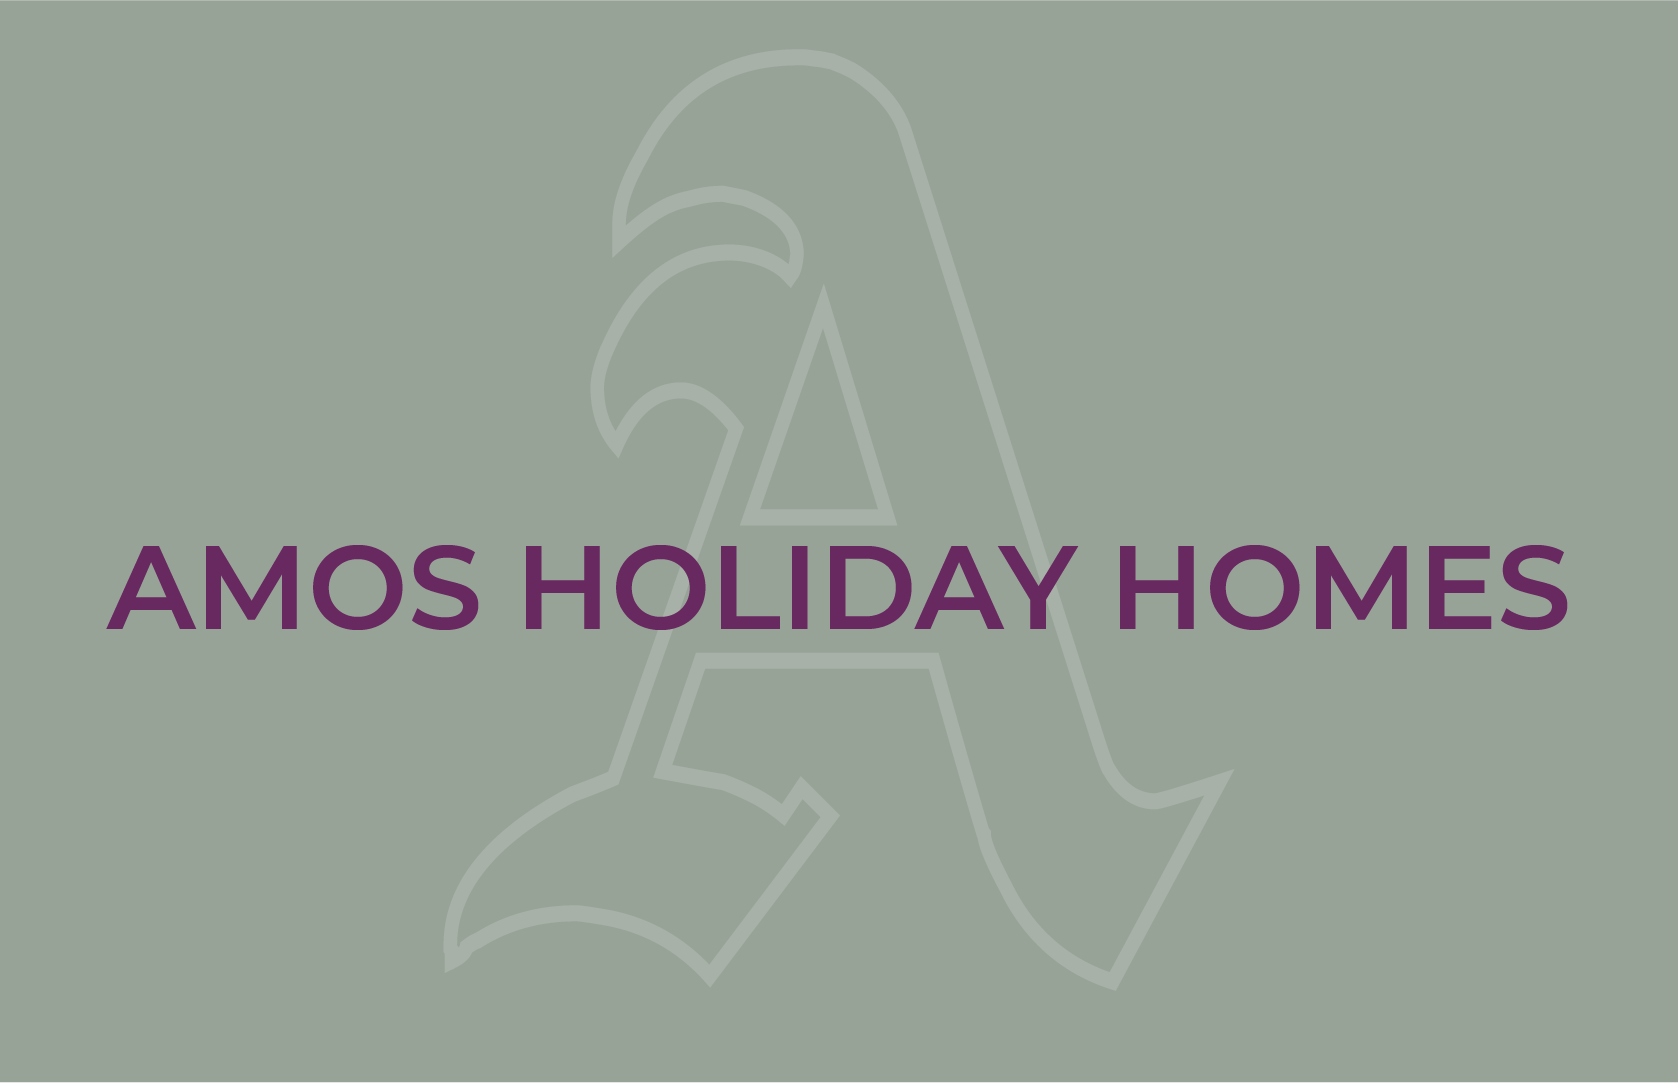 Amos Holiday Homes